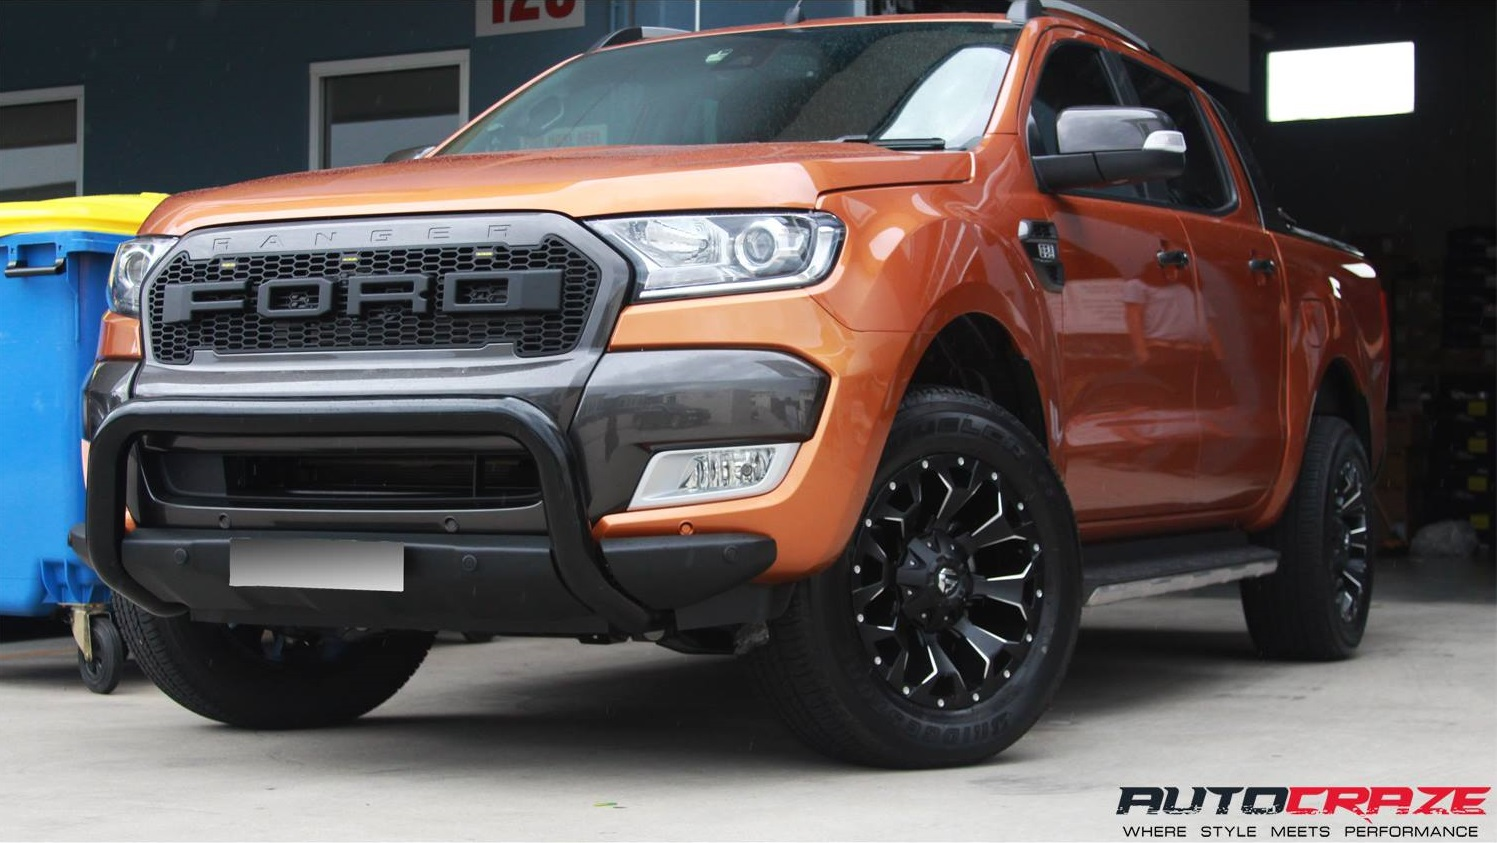 Lifted Subaru For Sale >> Ford Ranger Wheels Size | Buy Ranger Rims And Tyres For Sale